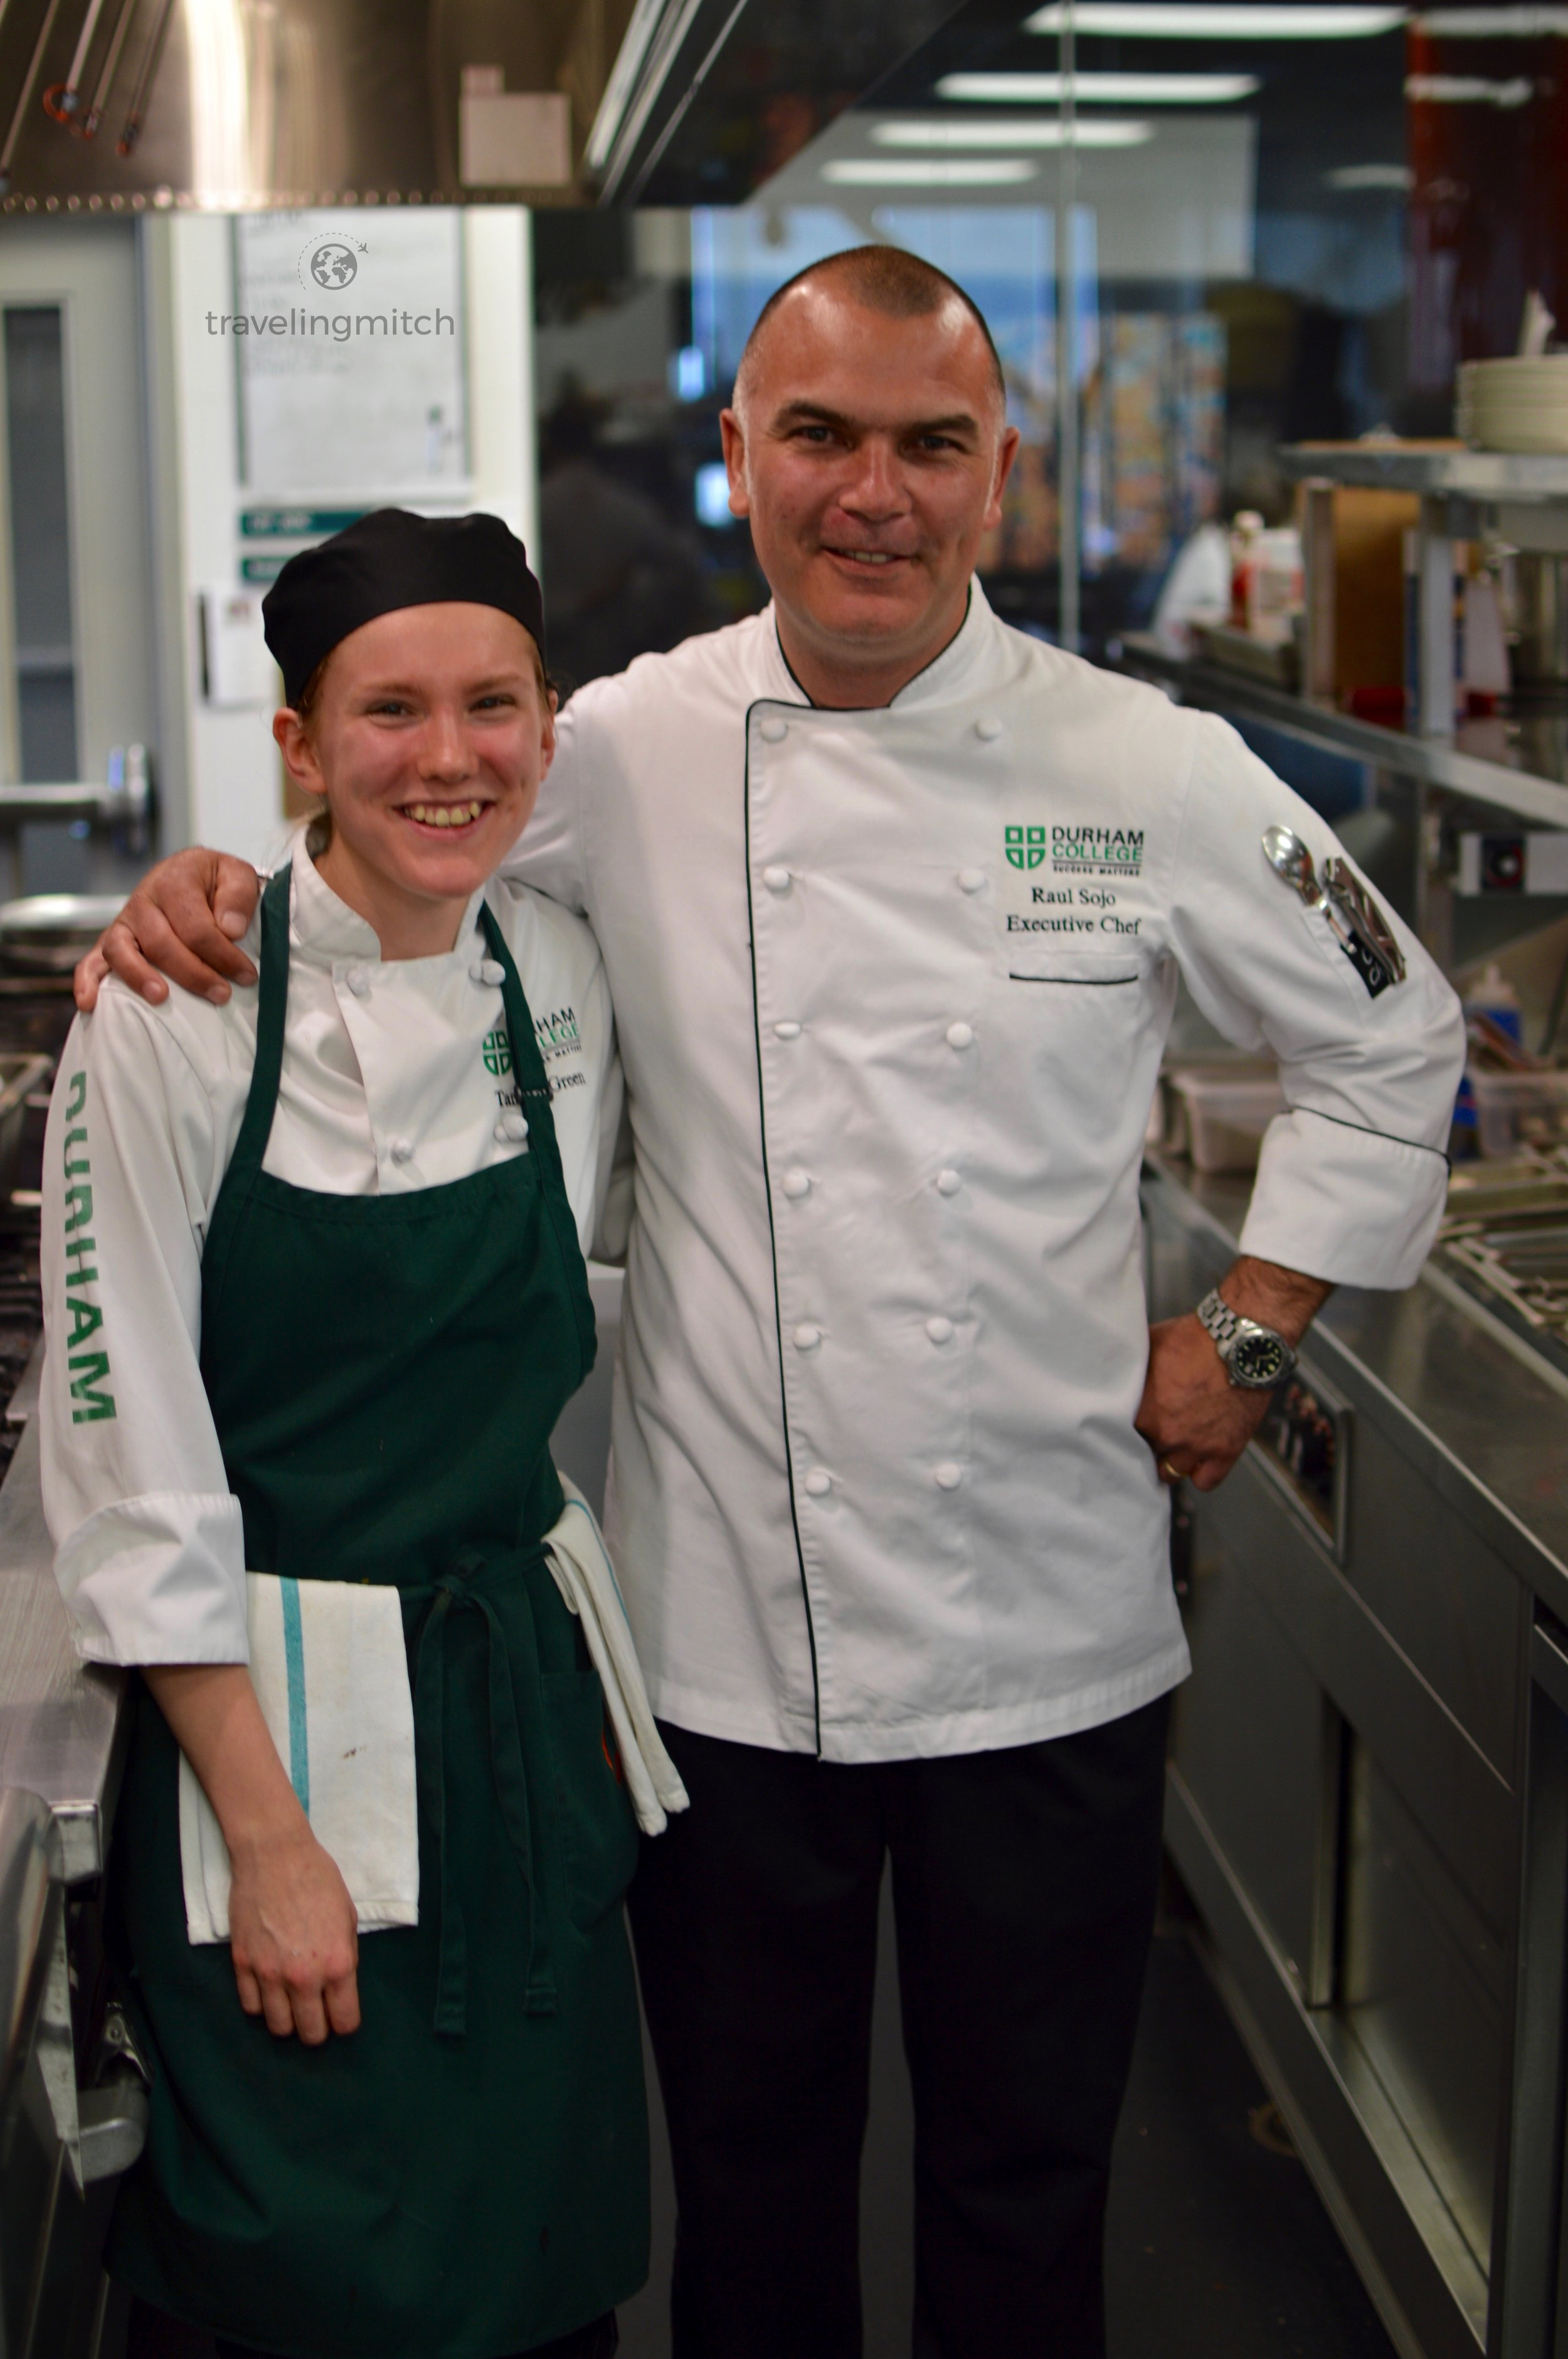 Raul Sojo, the executive chef of Bistro '67 with a Durham College student in tow.